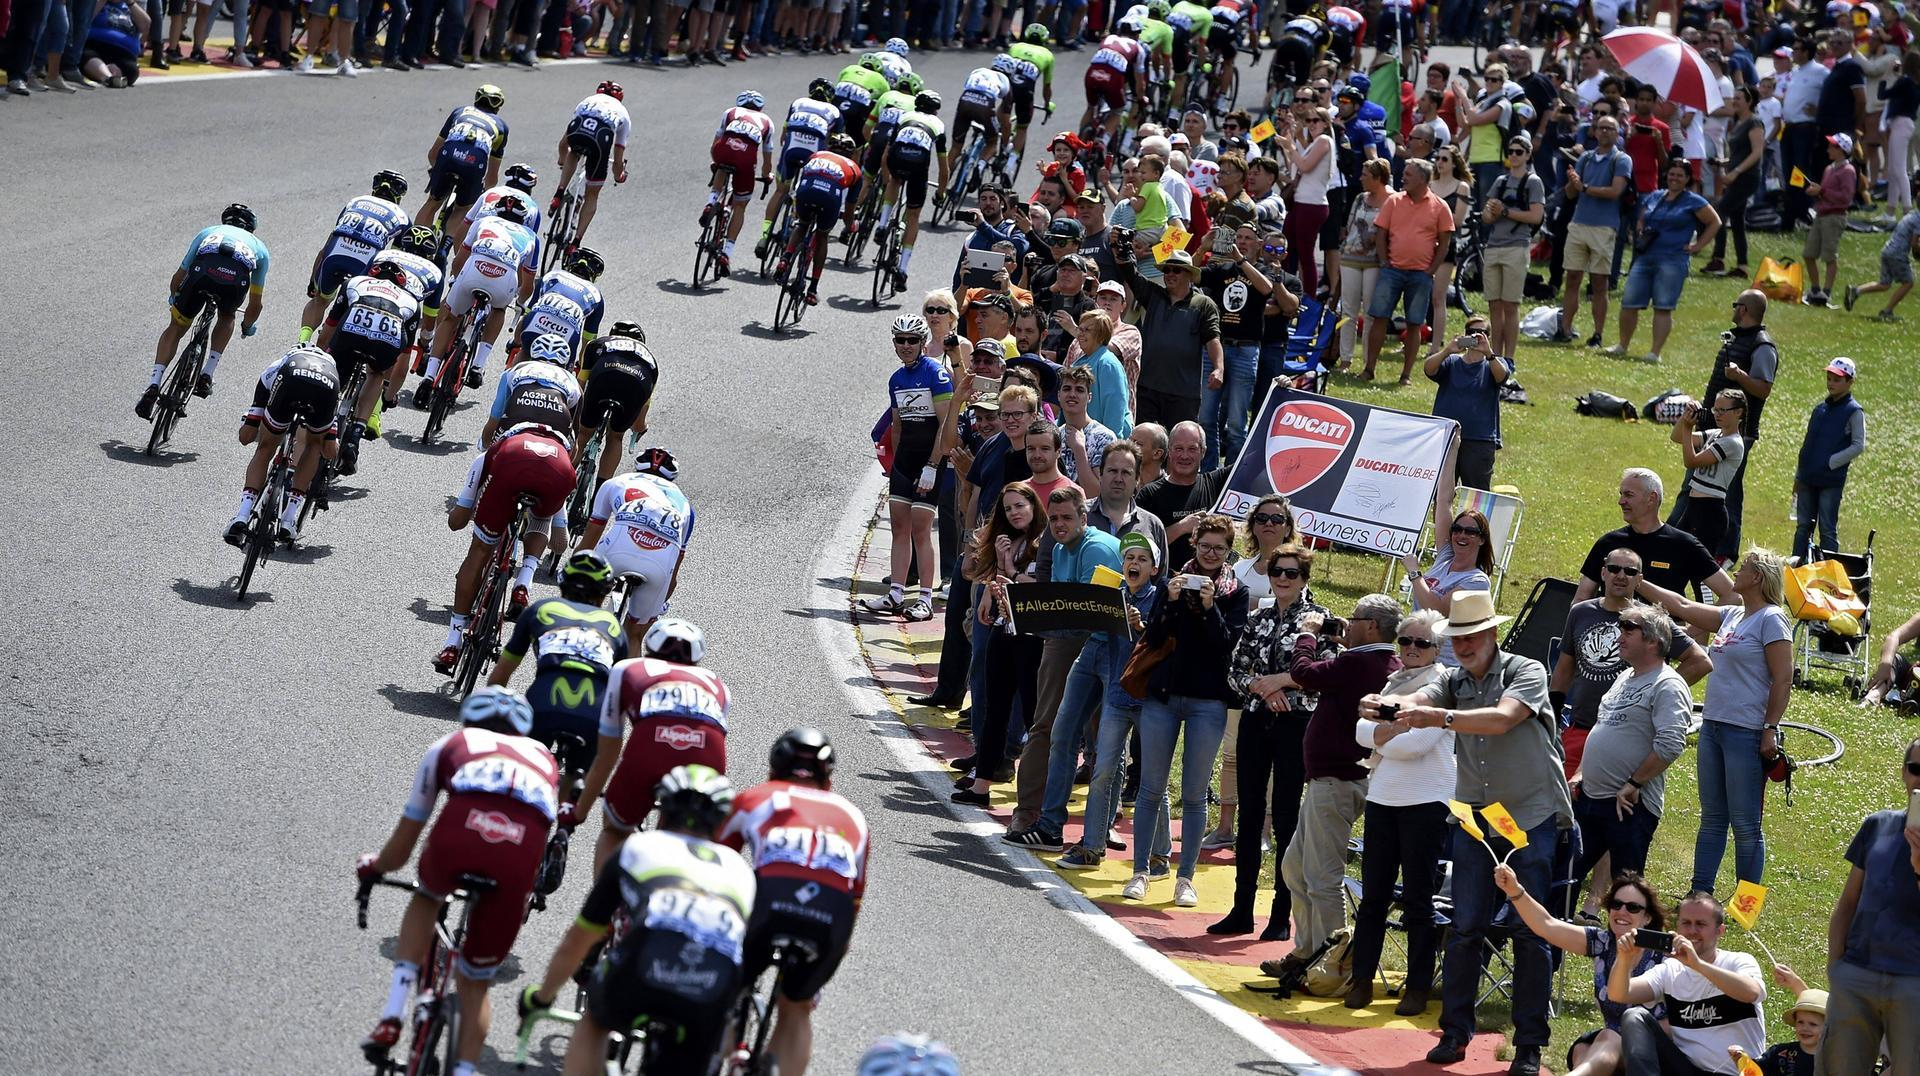 9. Etappe: Nantua - Chambéry Tour de France im Live-Ticker. LONGWY LUXEMBOURG JULY 3 Illustration picture of the peloton passing on the famous race circuit (Quelle: Photo News Panoramic)